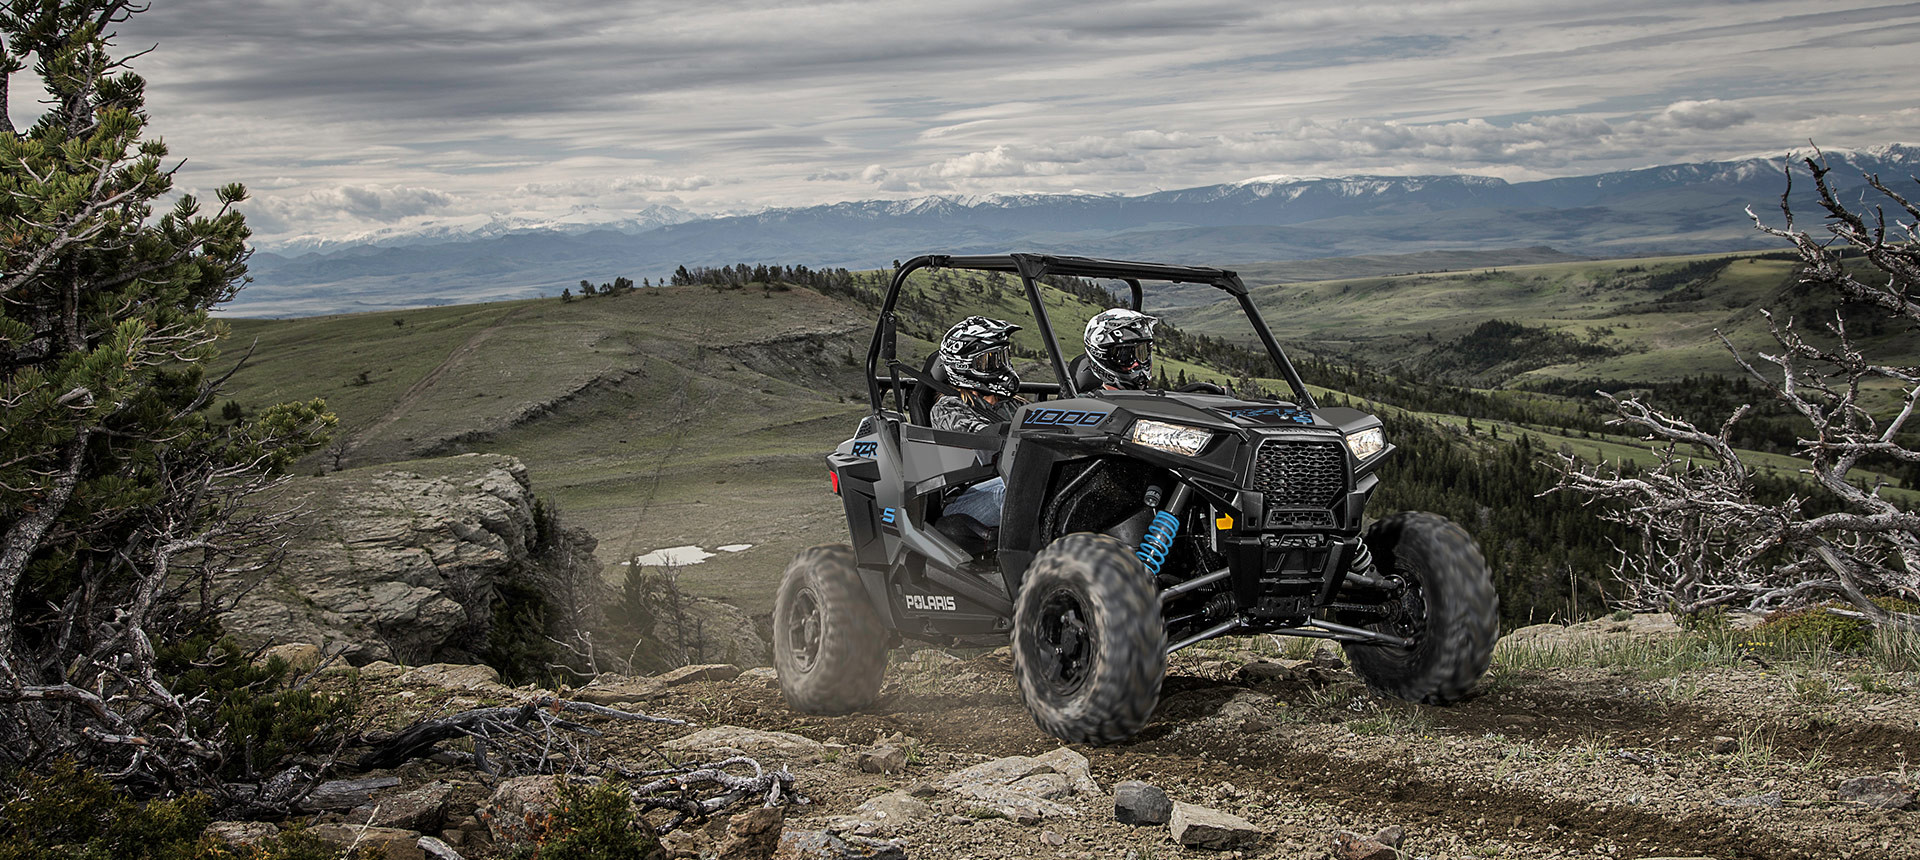 2020 RZR<sup>®</sup> Trail S 1000 Instagram image 1